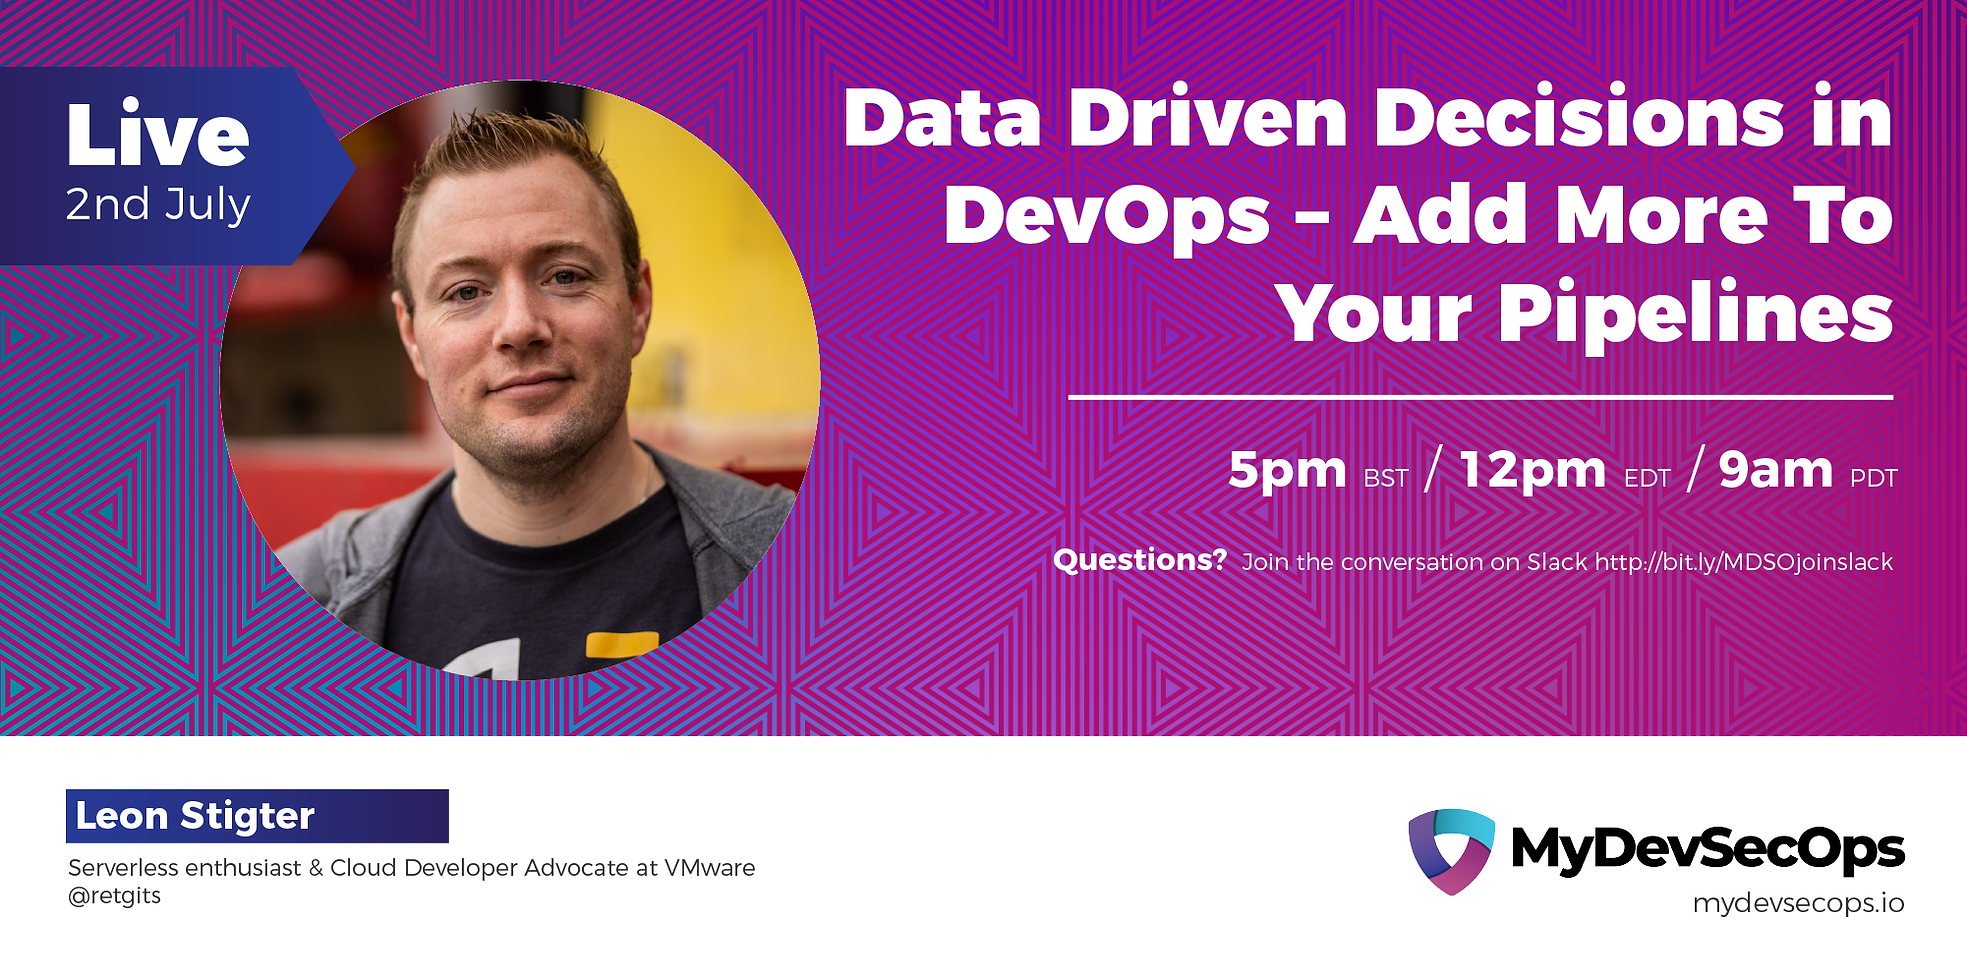 Data Driven Decisions in DevOps @ MyDevSecOps